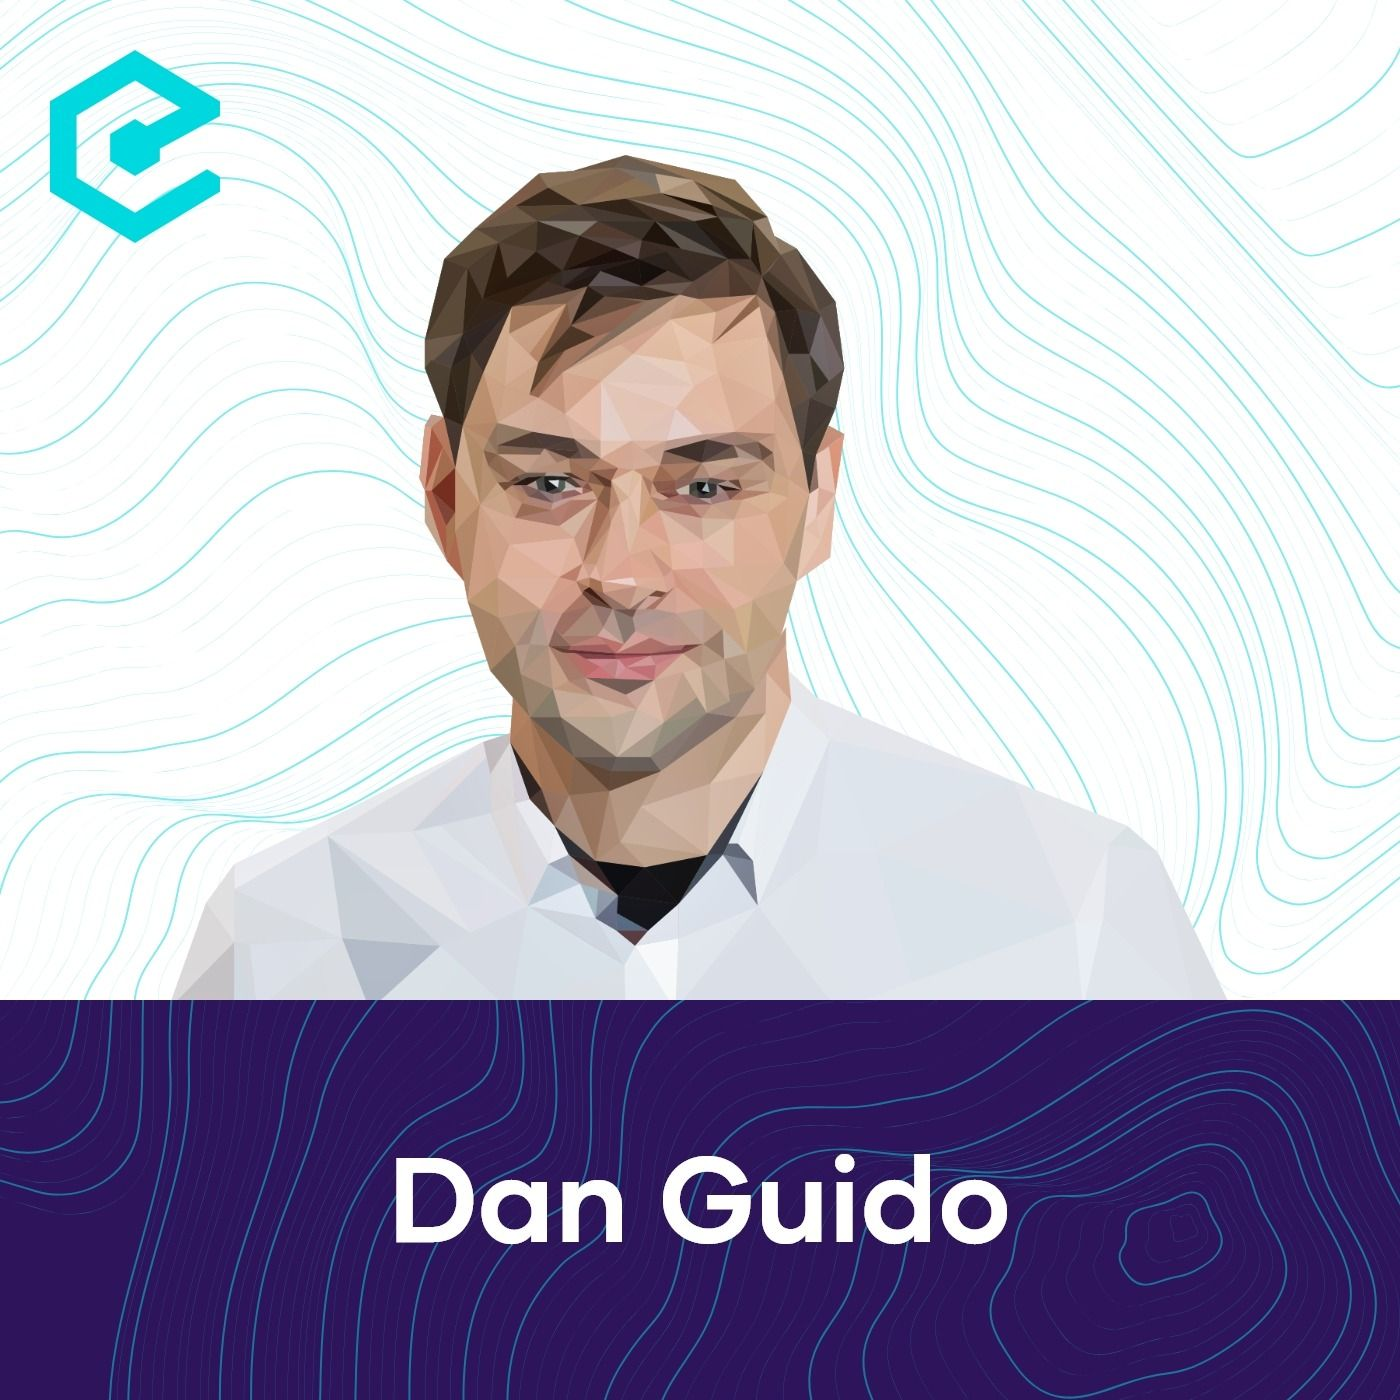 Dan Guido: Trail of Bits – The Evolution of Smart Contract Security